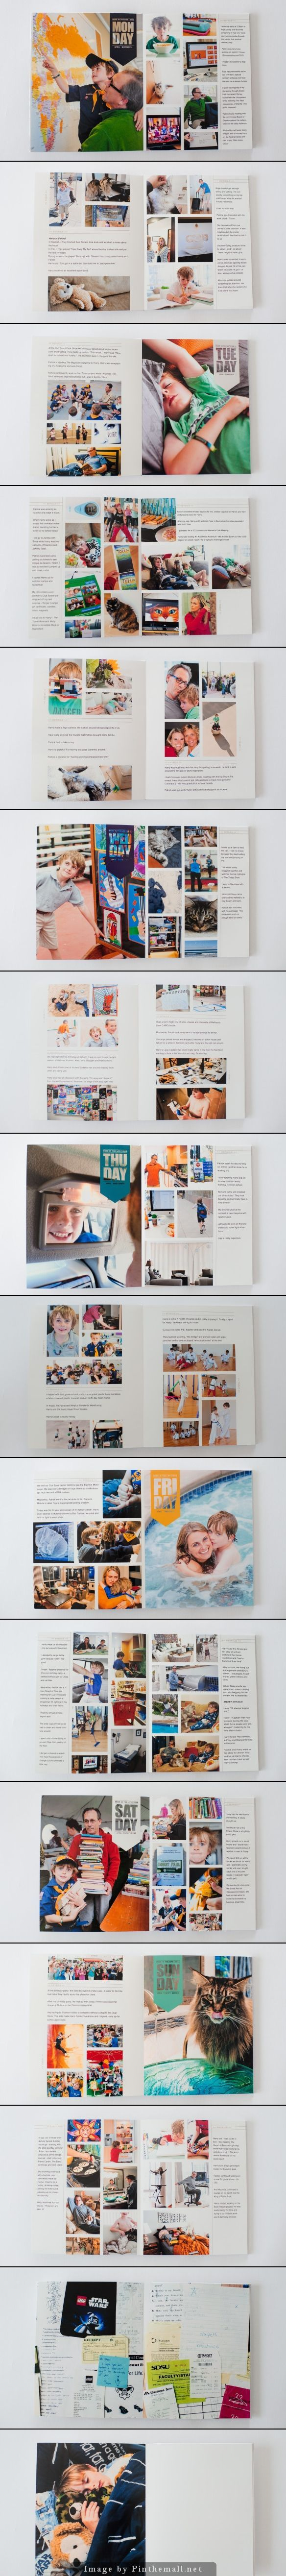 Week In the Life Photo Book from surf and sea design - love the crisp and clean style!